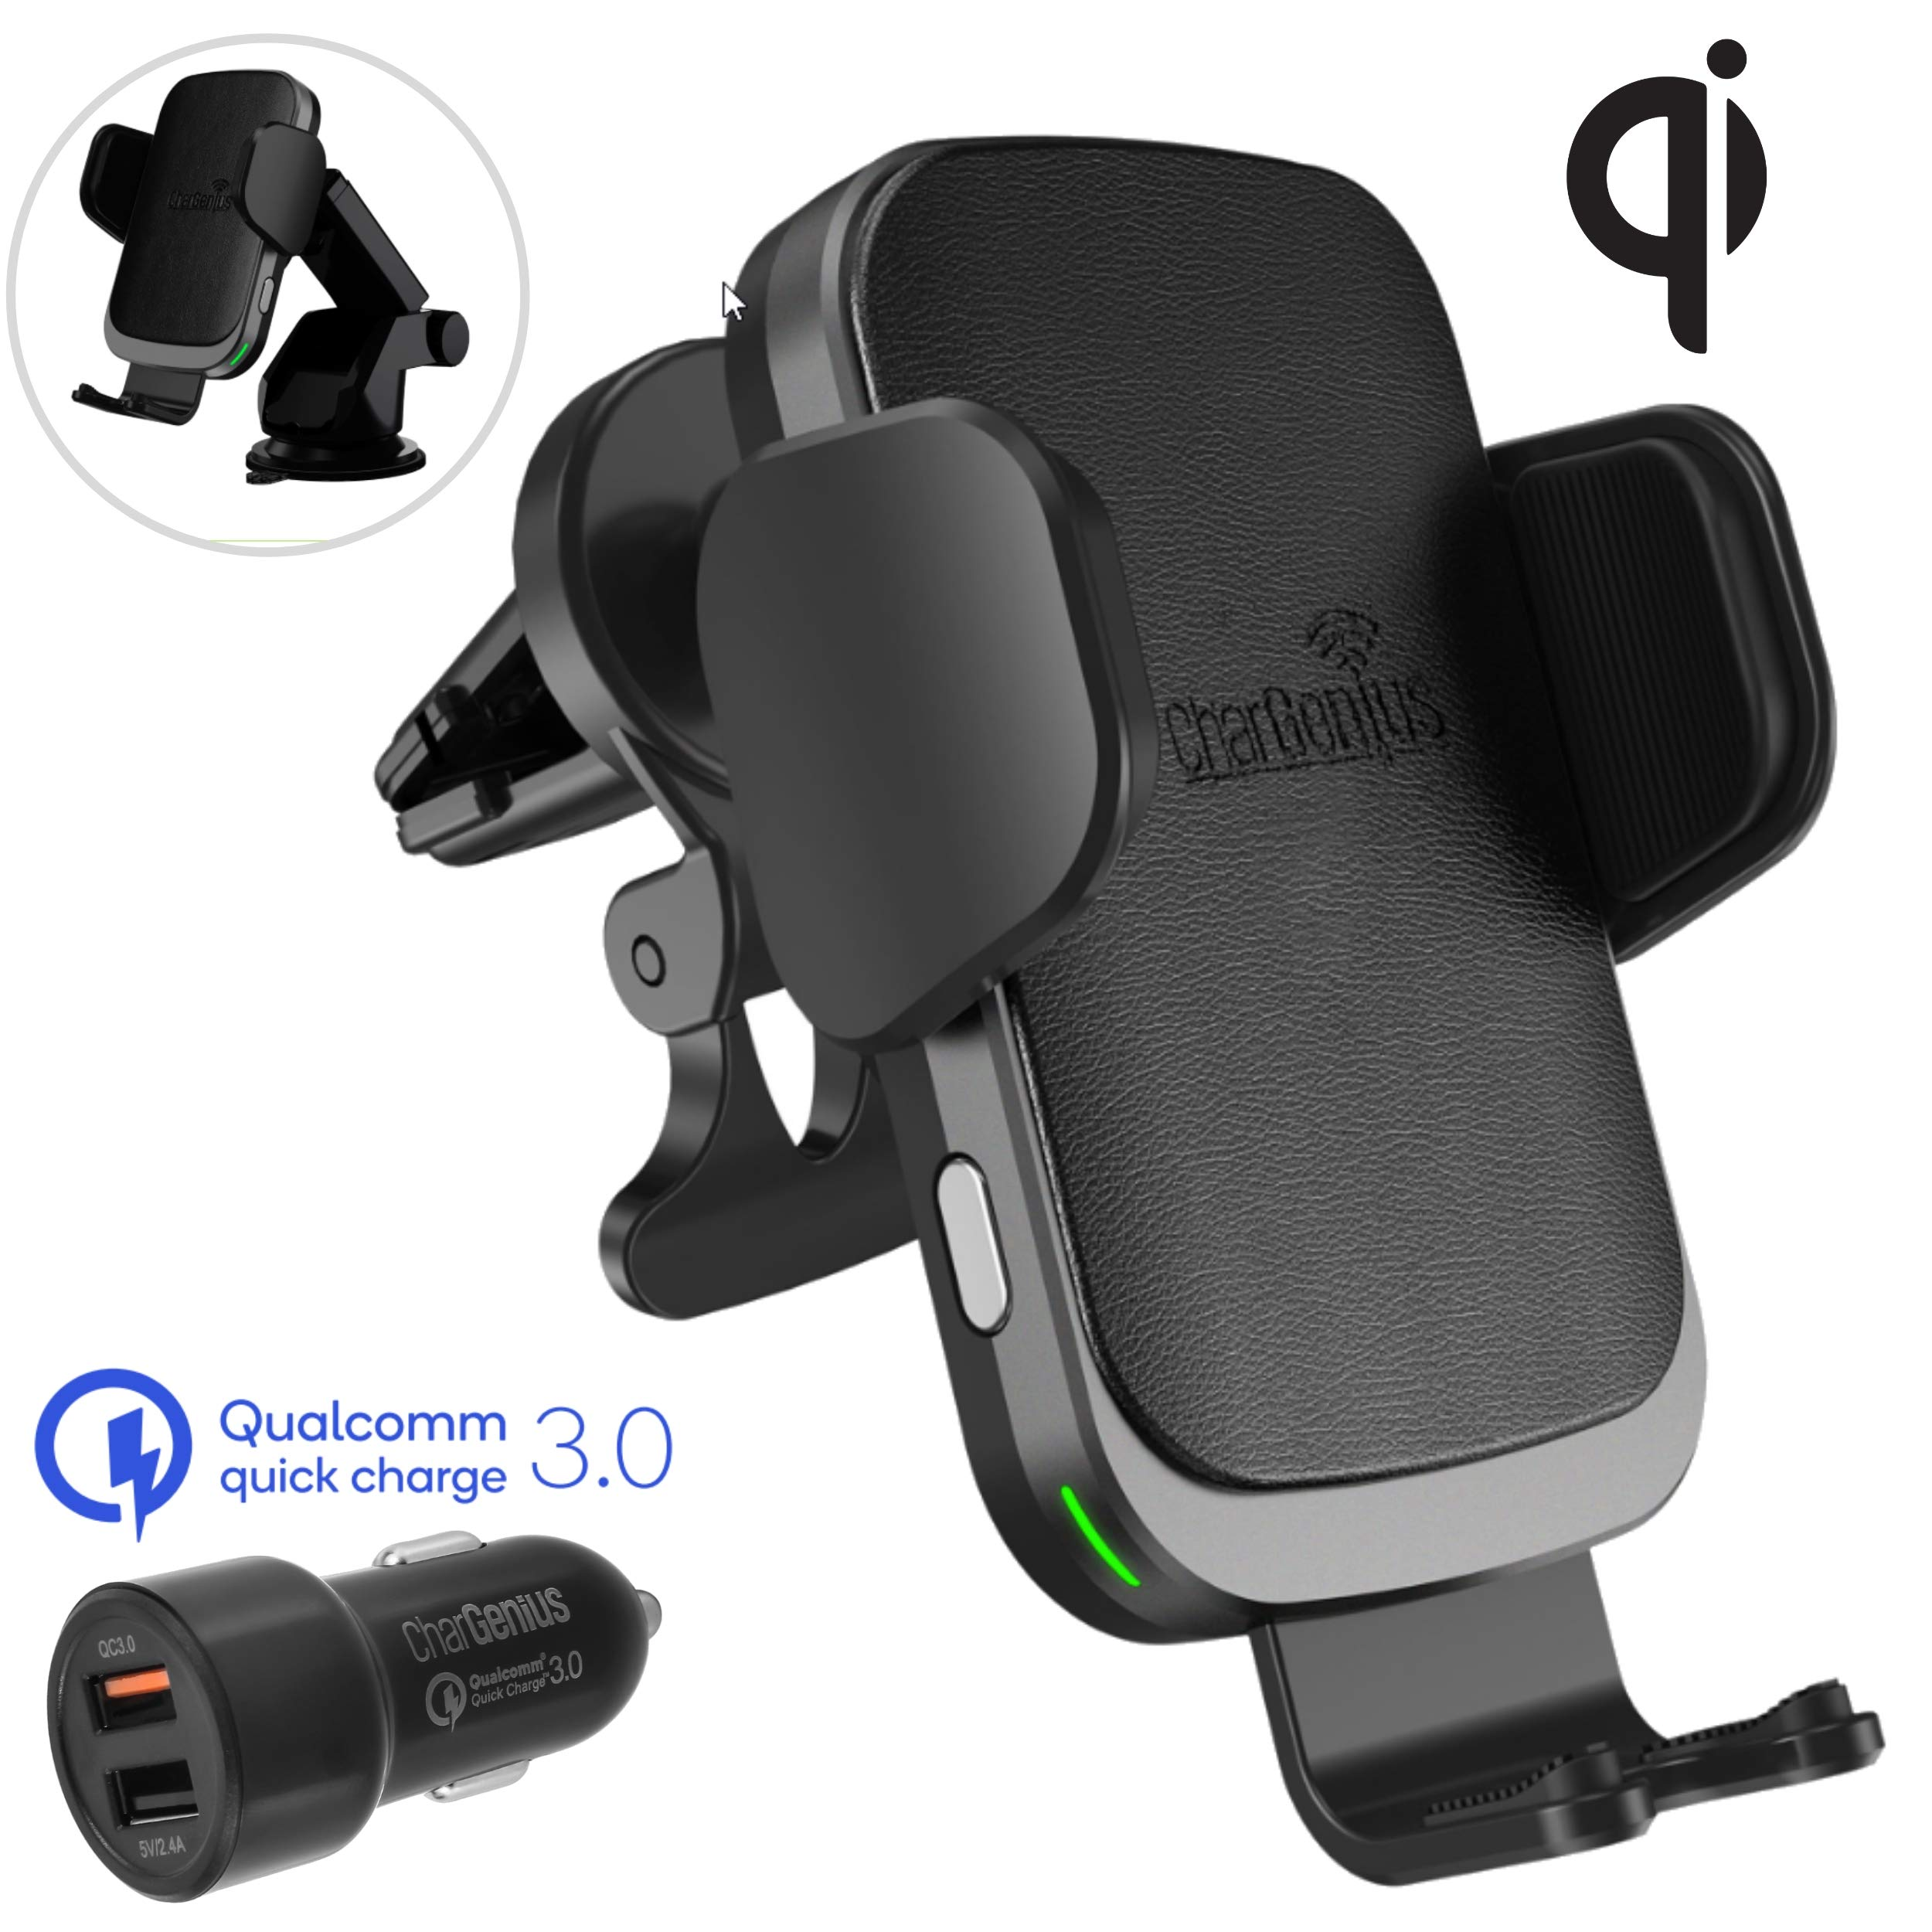 CharGenius Wireless Car Charger Mount, 10W Qi Fast Charging Auto Clamping, Dashboard Windshield Air-Vent Holder CD Mount for Samsung Galaxy S10+/S10/S9+/S9/S8+/S8/S7/Note9/8 or iPhone Xs/Max/XR/X/8+/8 by CHARGENIUS